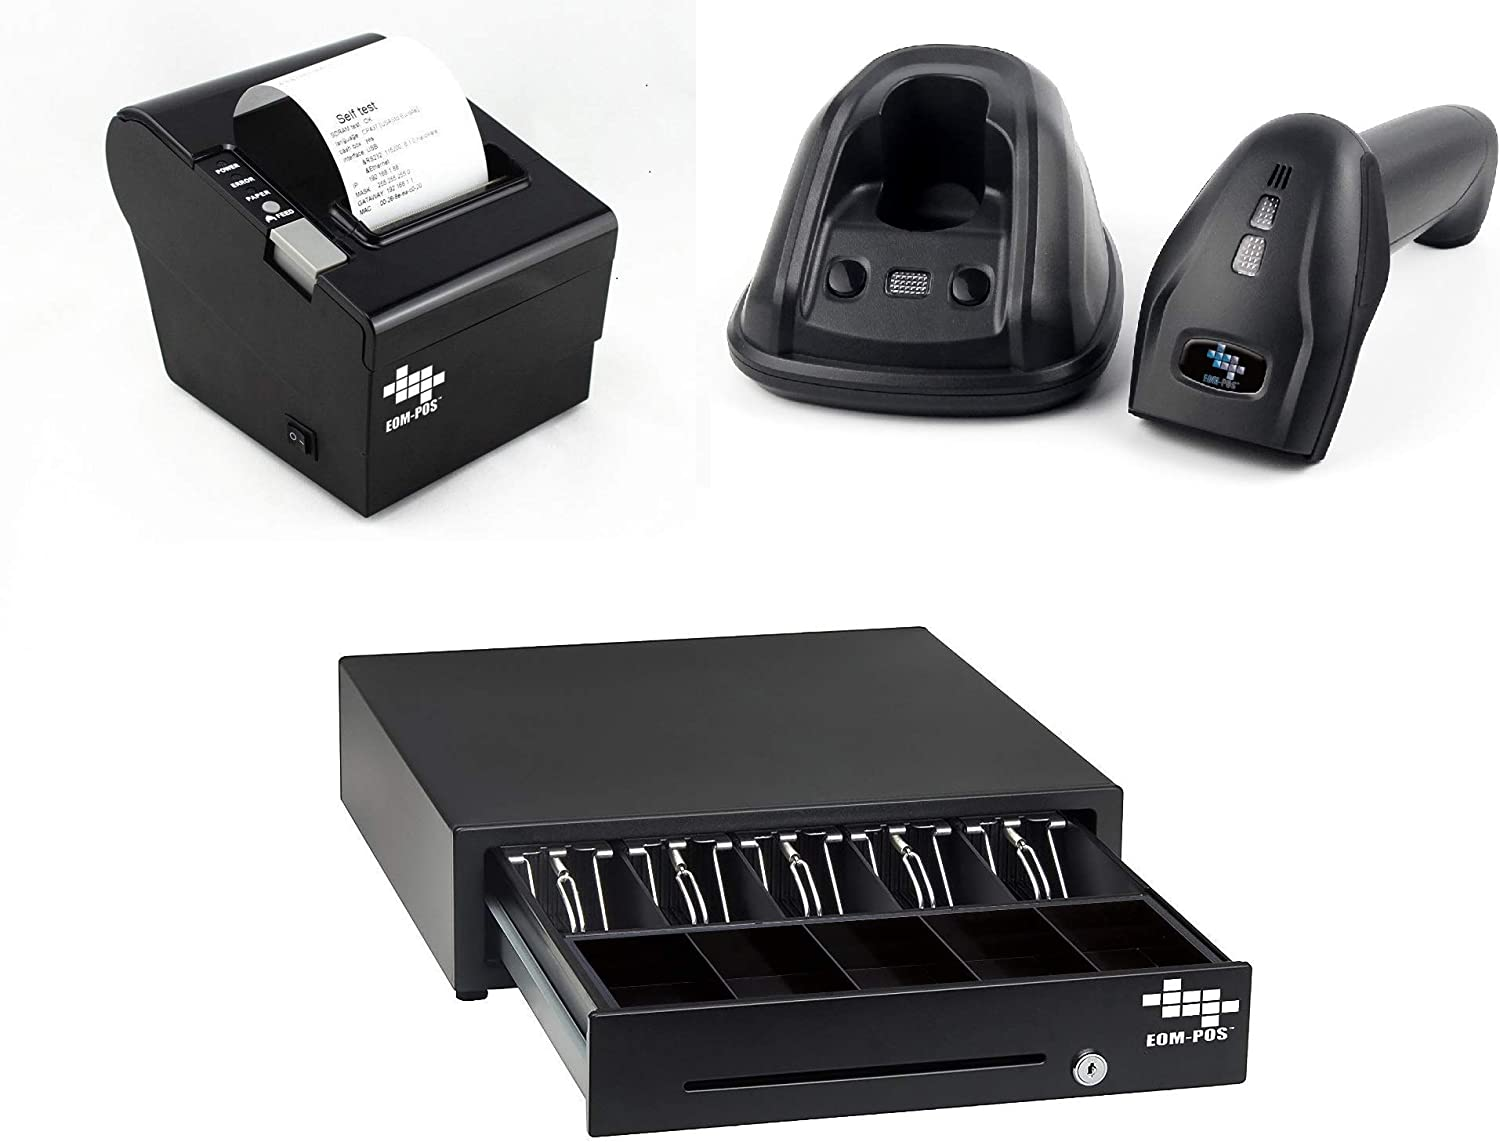 EOM-POS Heavy Duty Cash Register Drawer + Thermal Receipt Printer (80mm) + Barcode Scanner (Cordless) [Black] NOT for Square